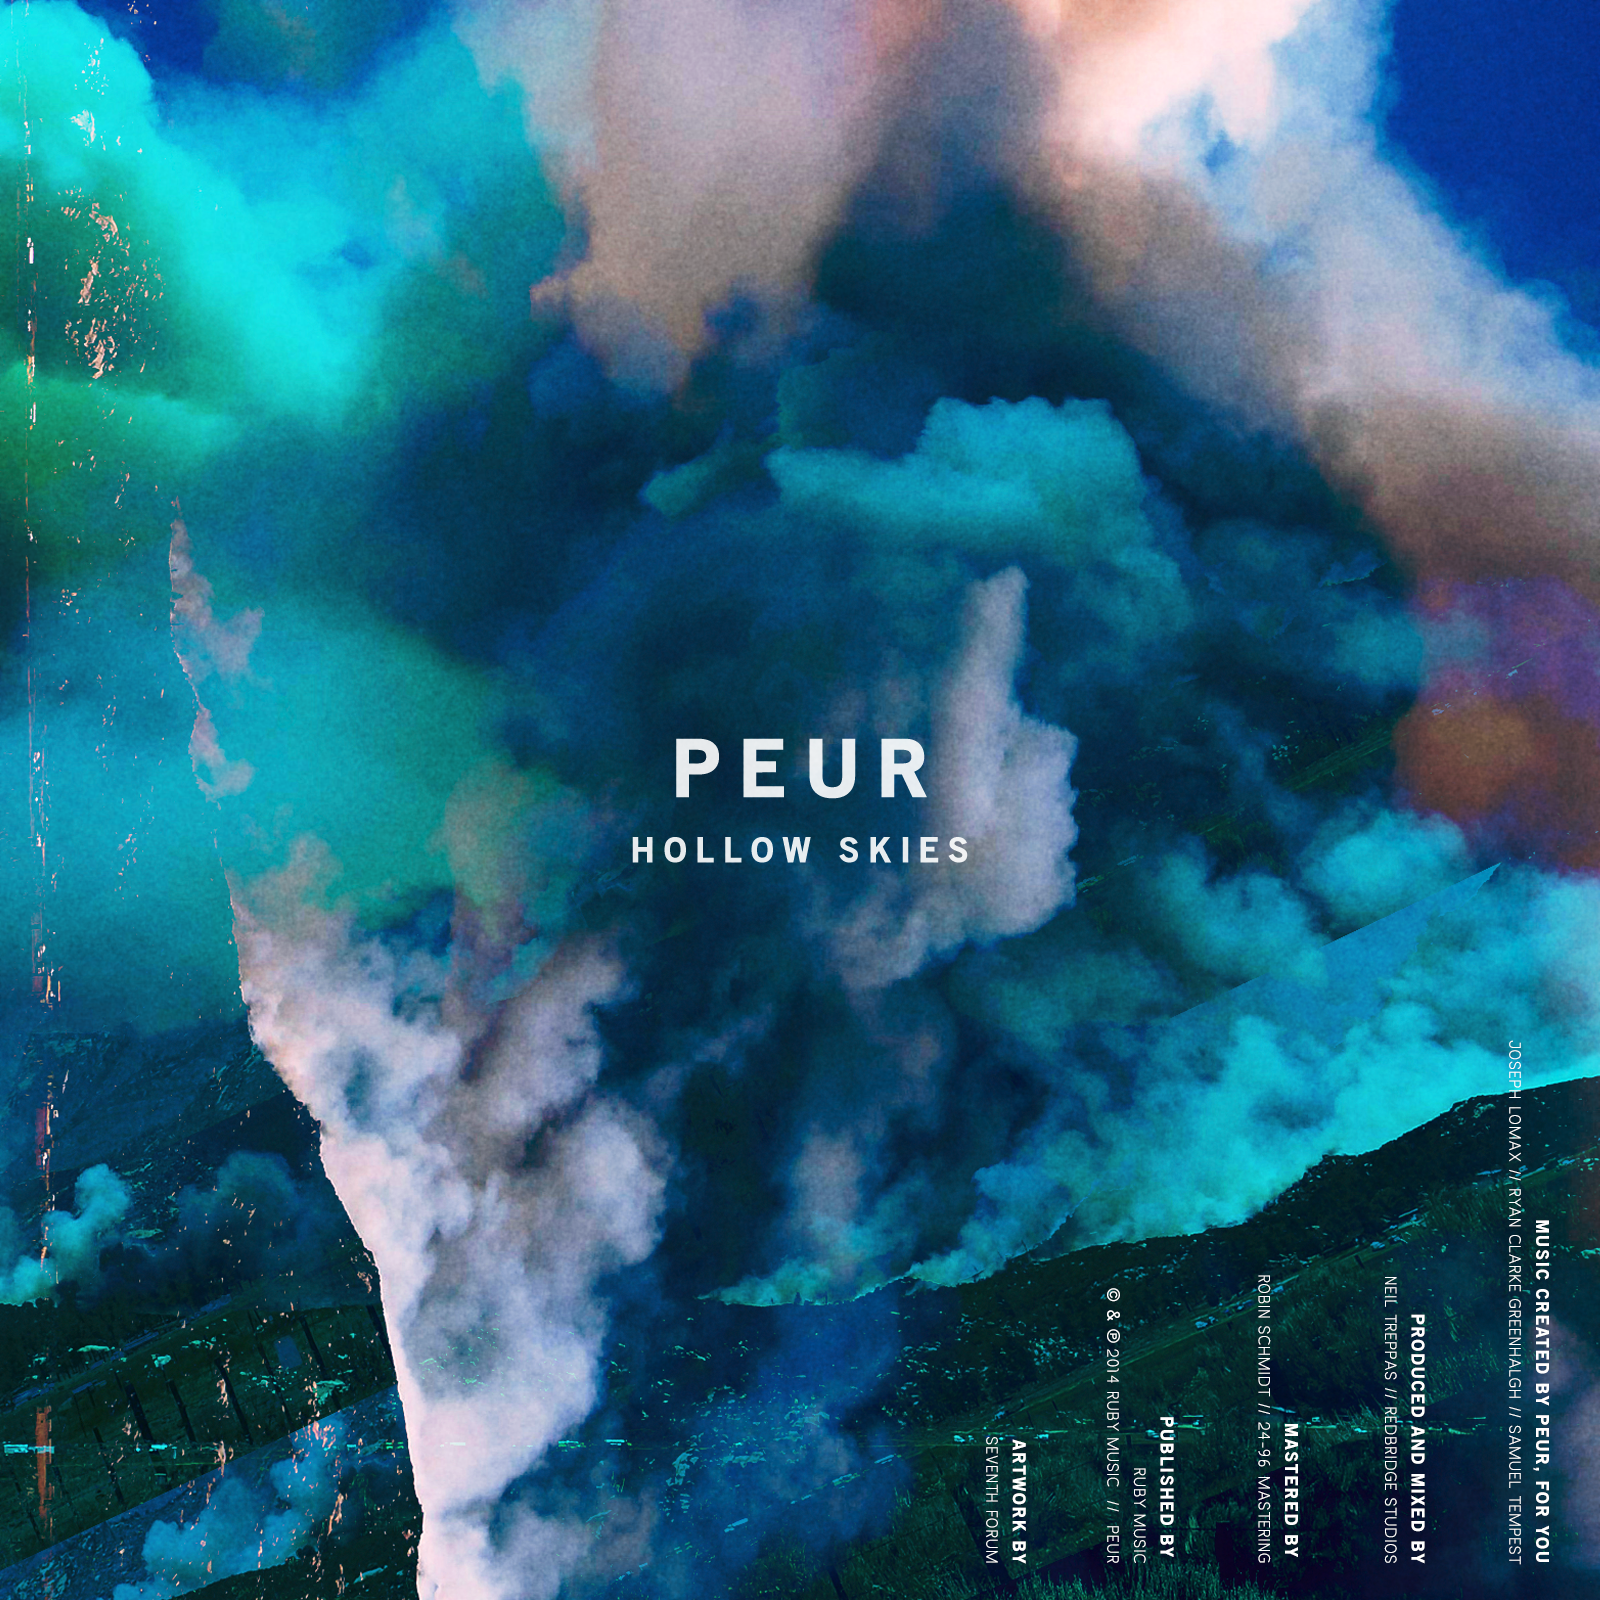 Peur - Hollow Skies